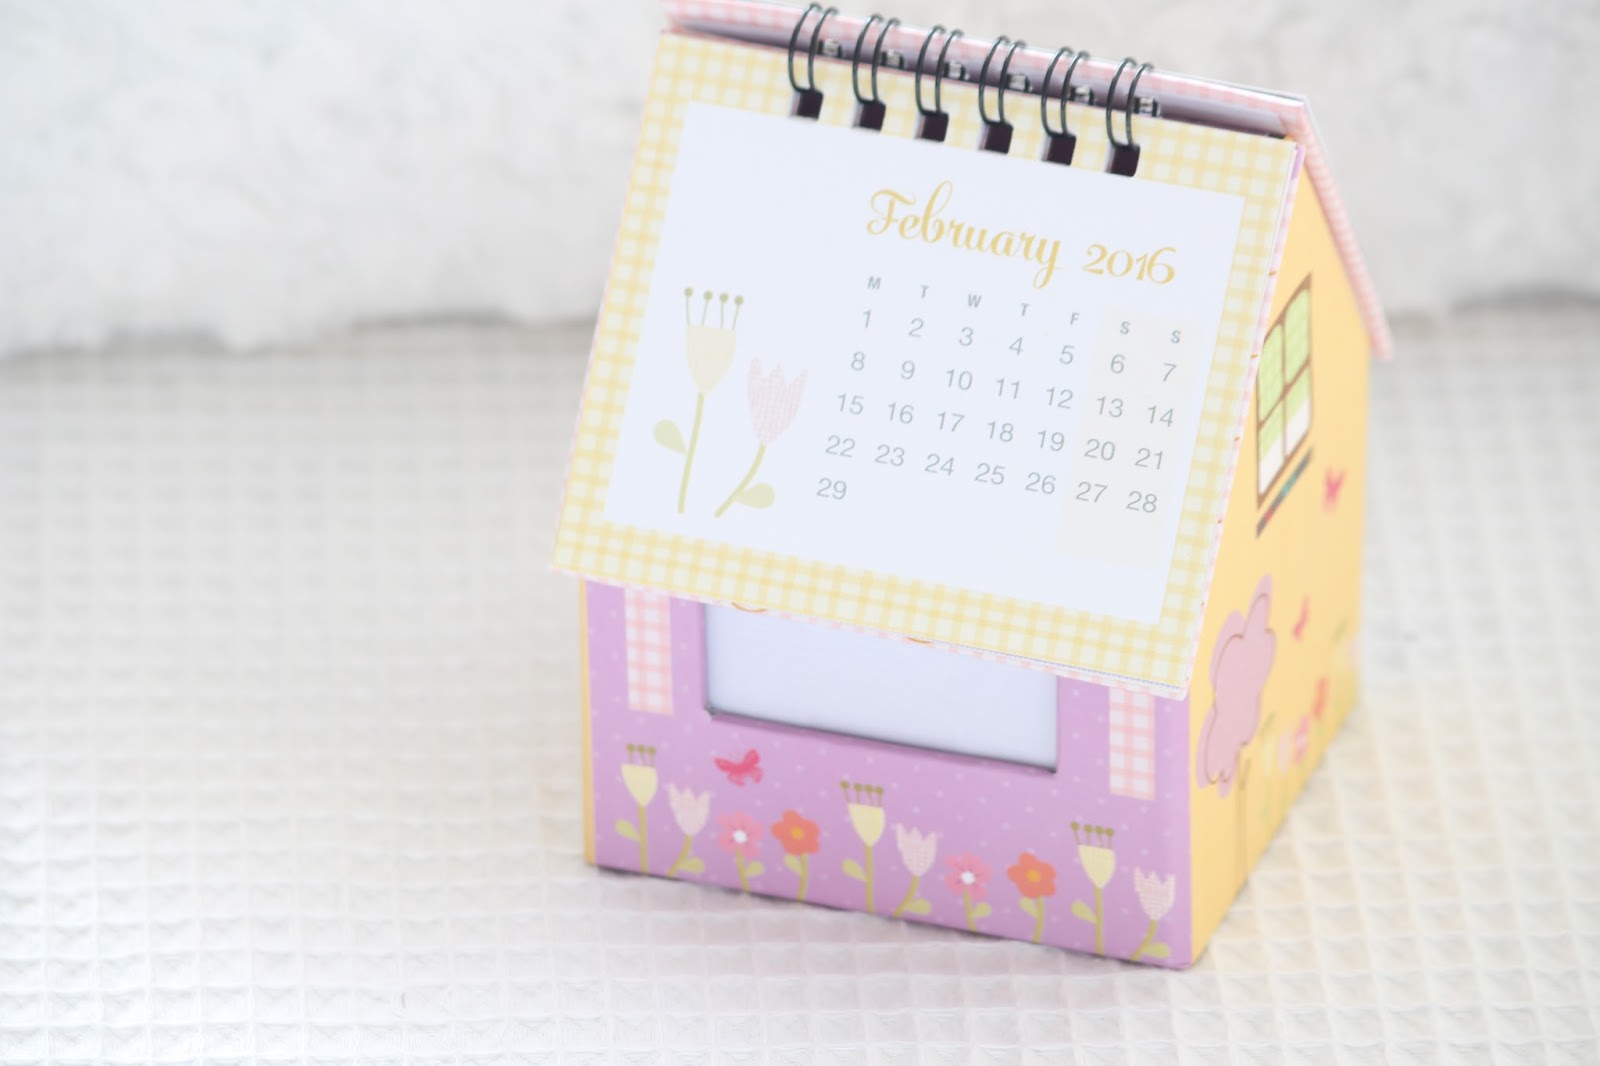 Organisation key advice blog calendar